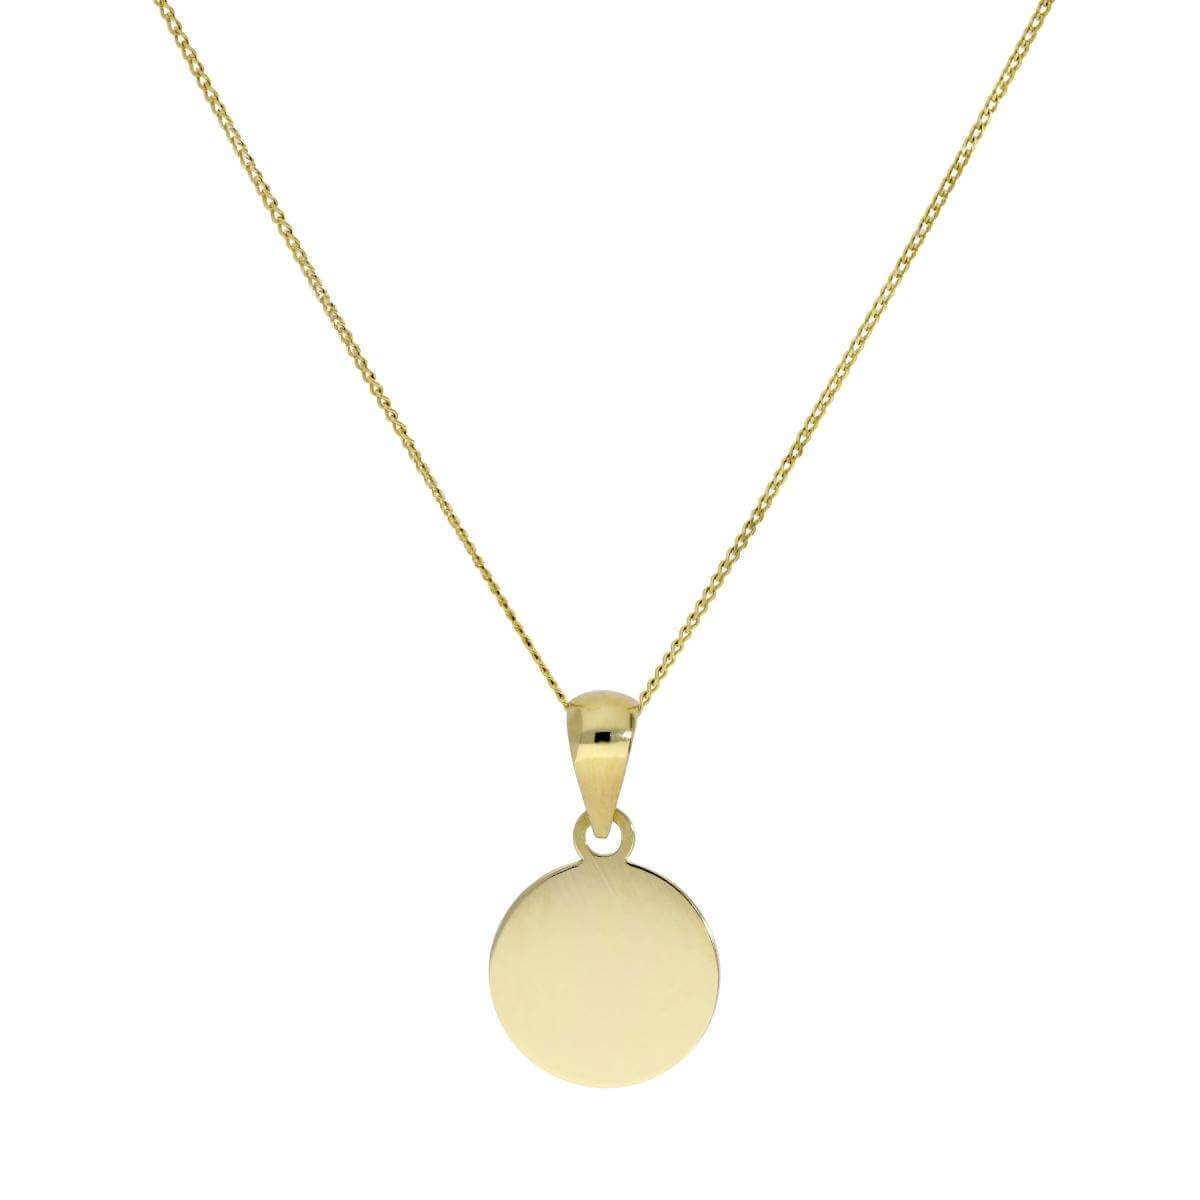 9ct Gold Engravable Round Pendant on Chain 16 - 20 Inches Chain